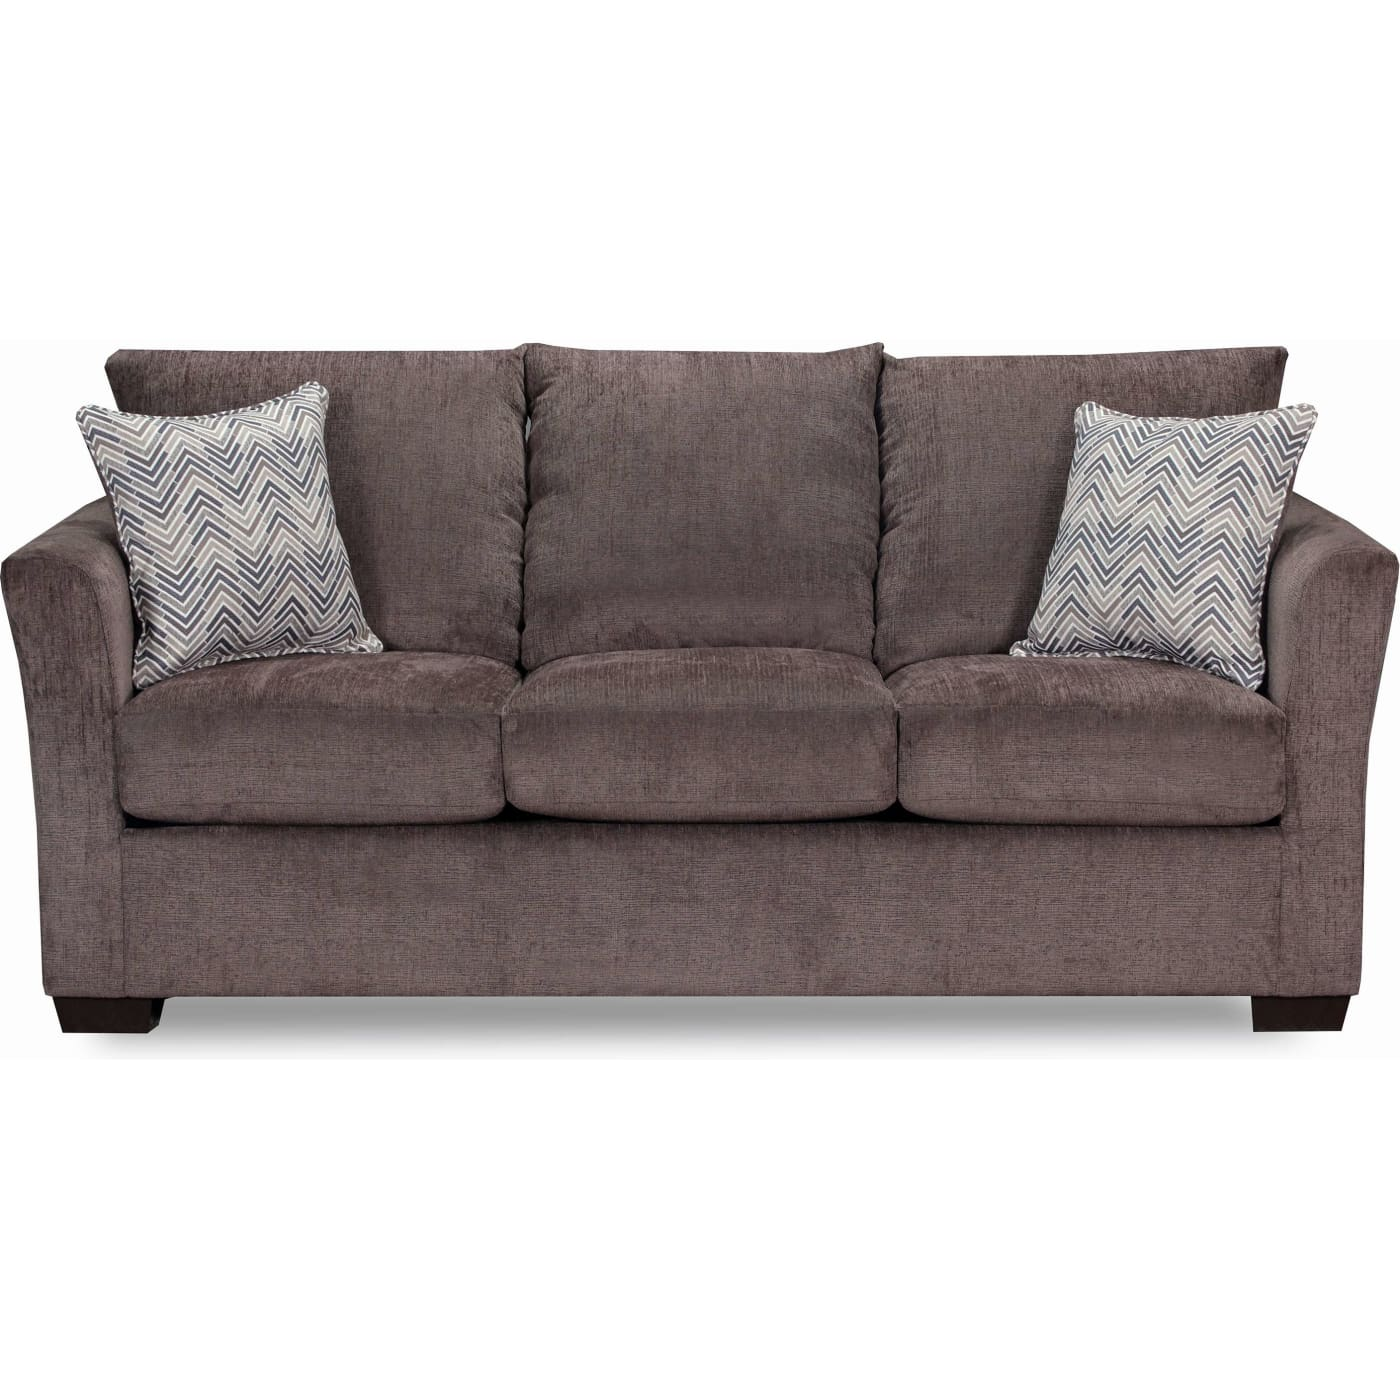 Elan Coffee Queen Sleeper Sofa. Simmons 4206 04Q Elan Coffee ...